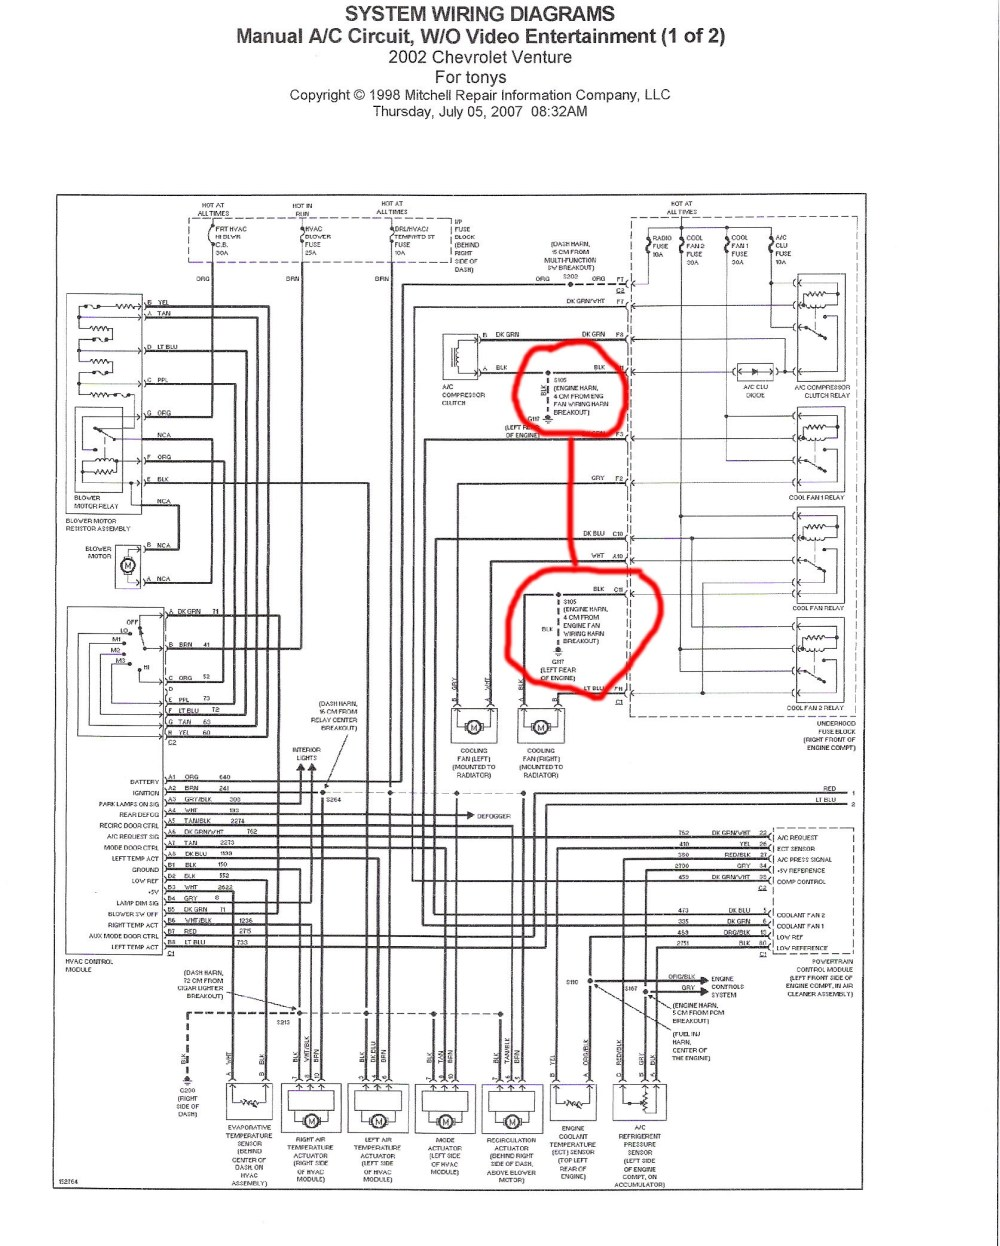 medium resolution of 2012 chevy cruze engine wiring diagram wiring diagrams rh 2 crocodilecruisedarwin com 2014 chevy cruze wiring diagram 2012 chevy cruze headlight wiring